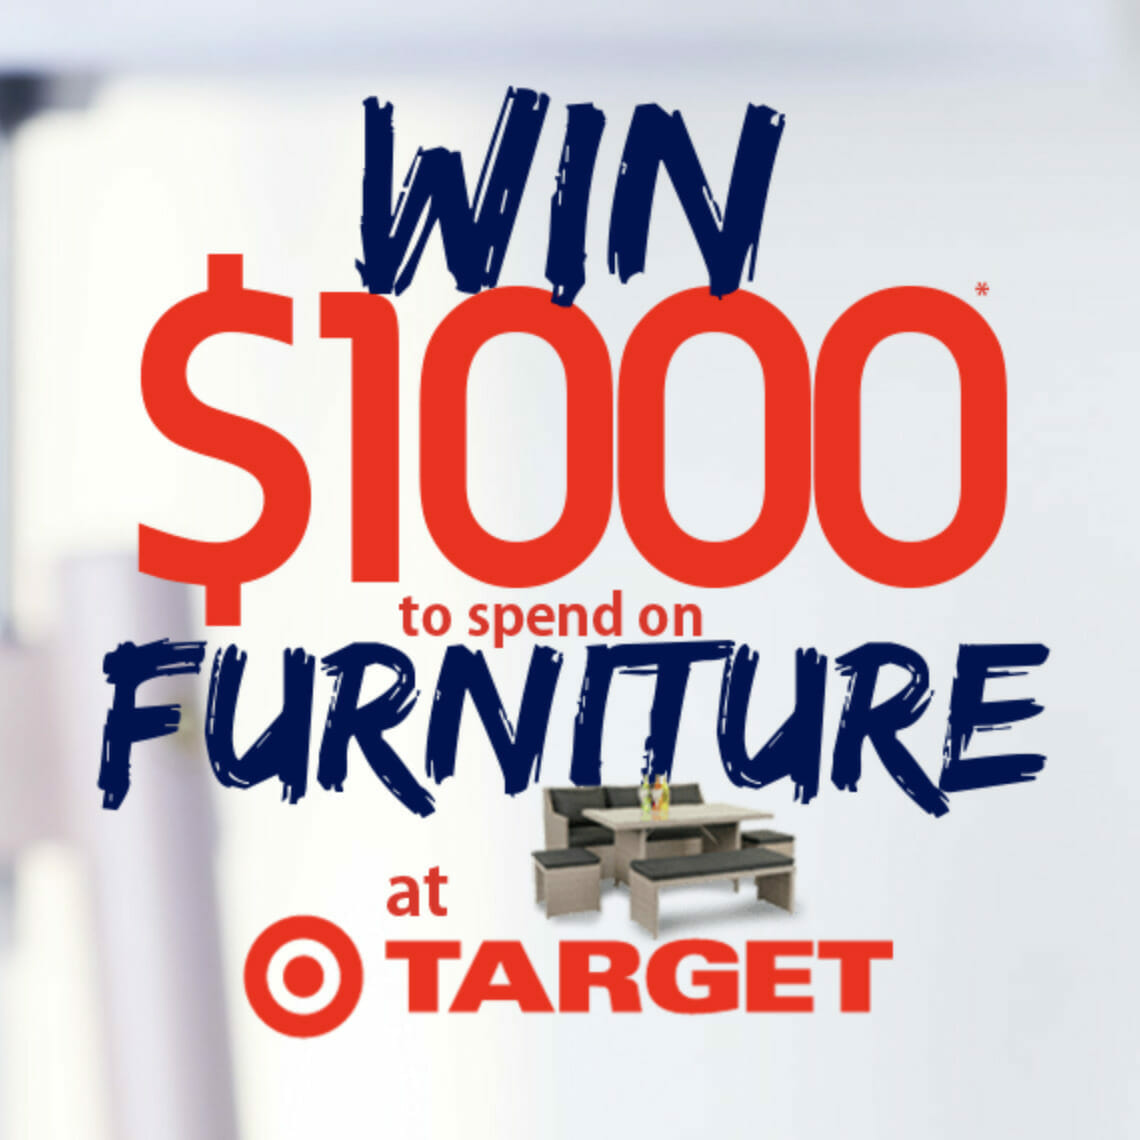 Win $1,000 to spend at Target